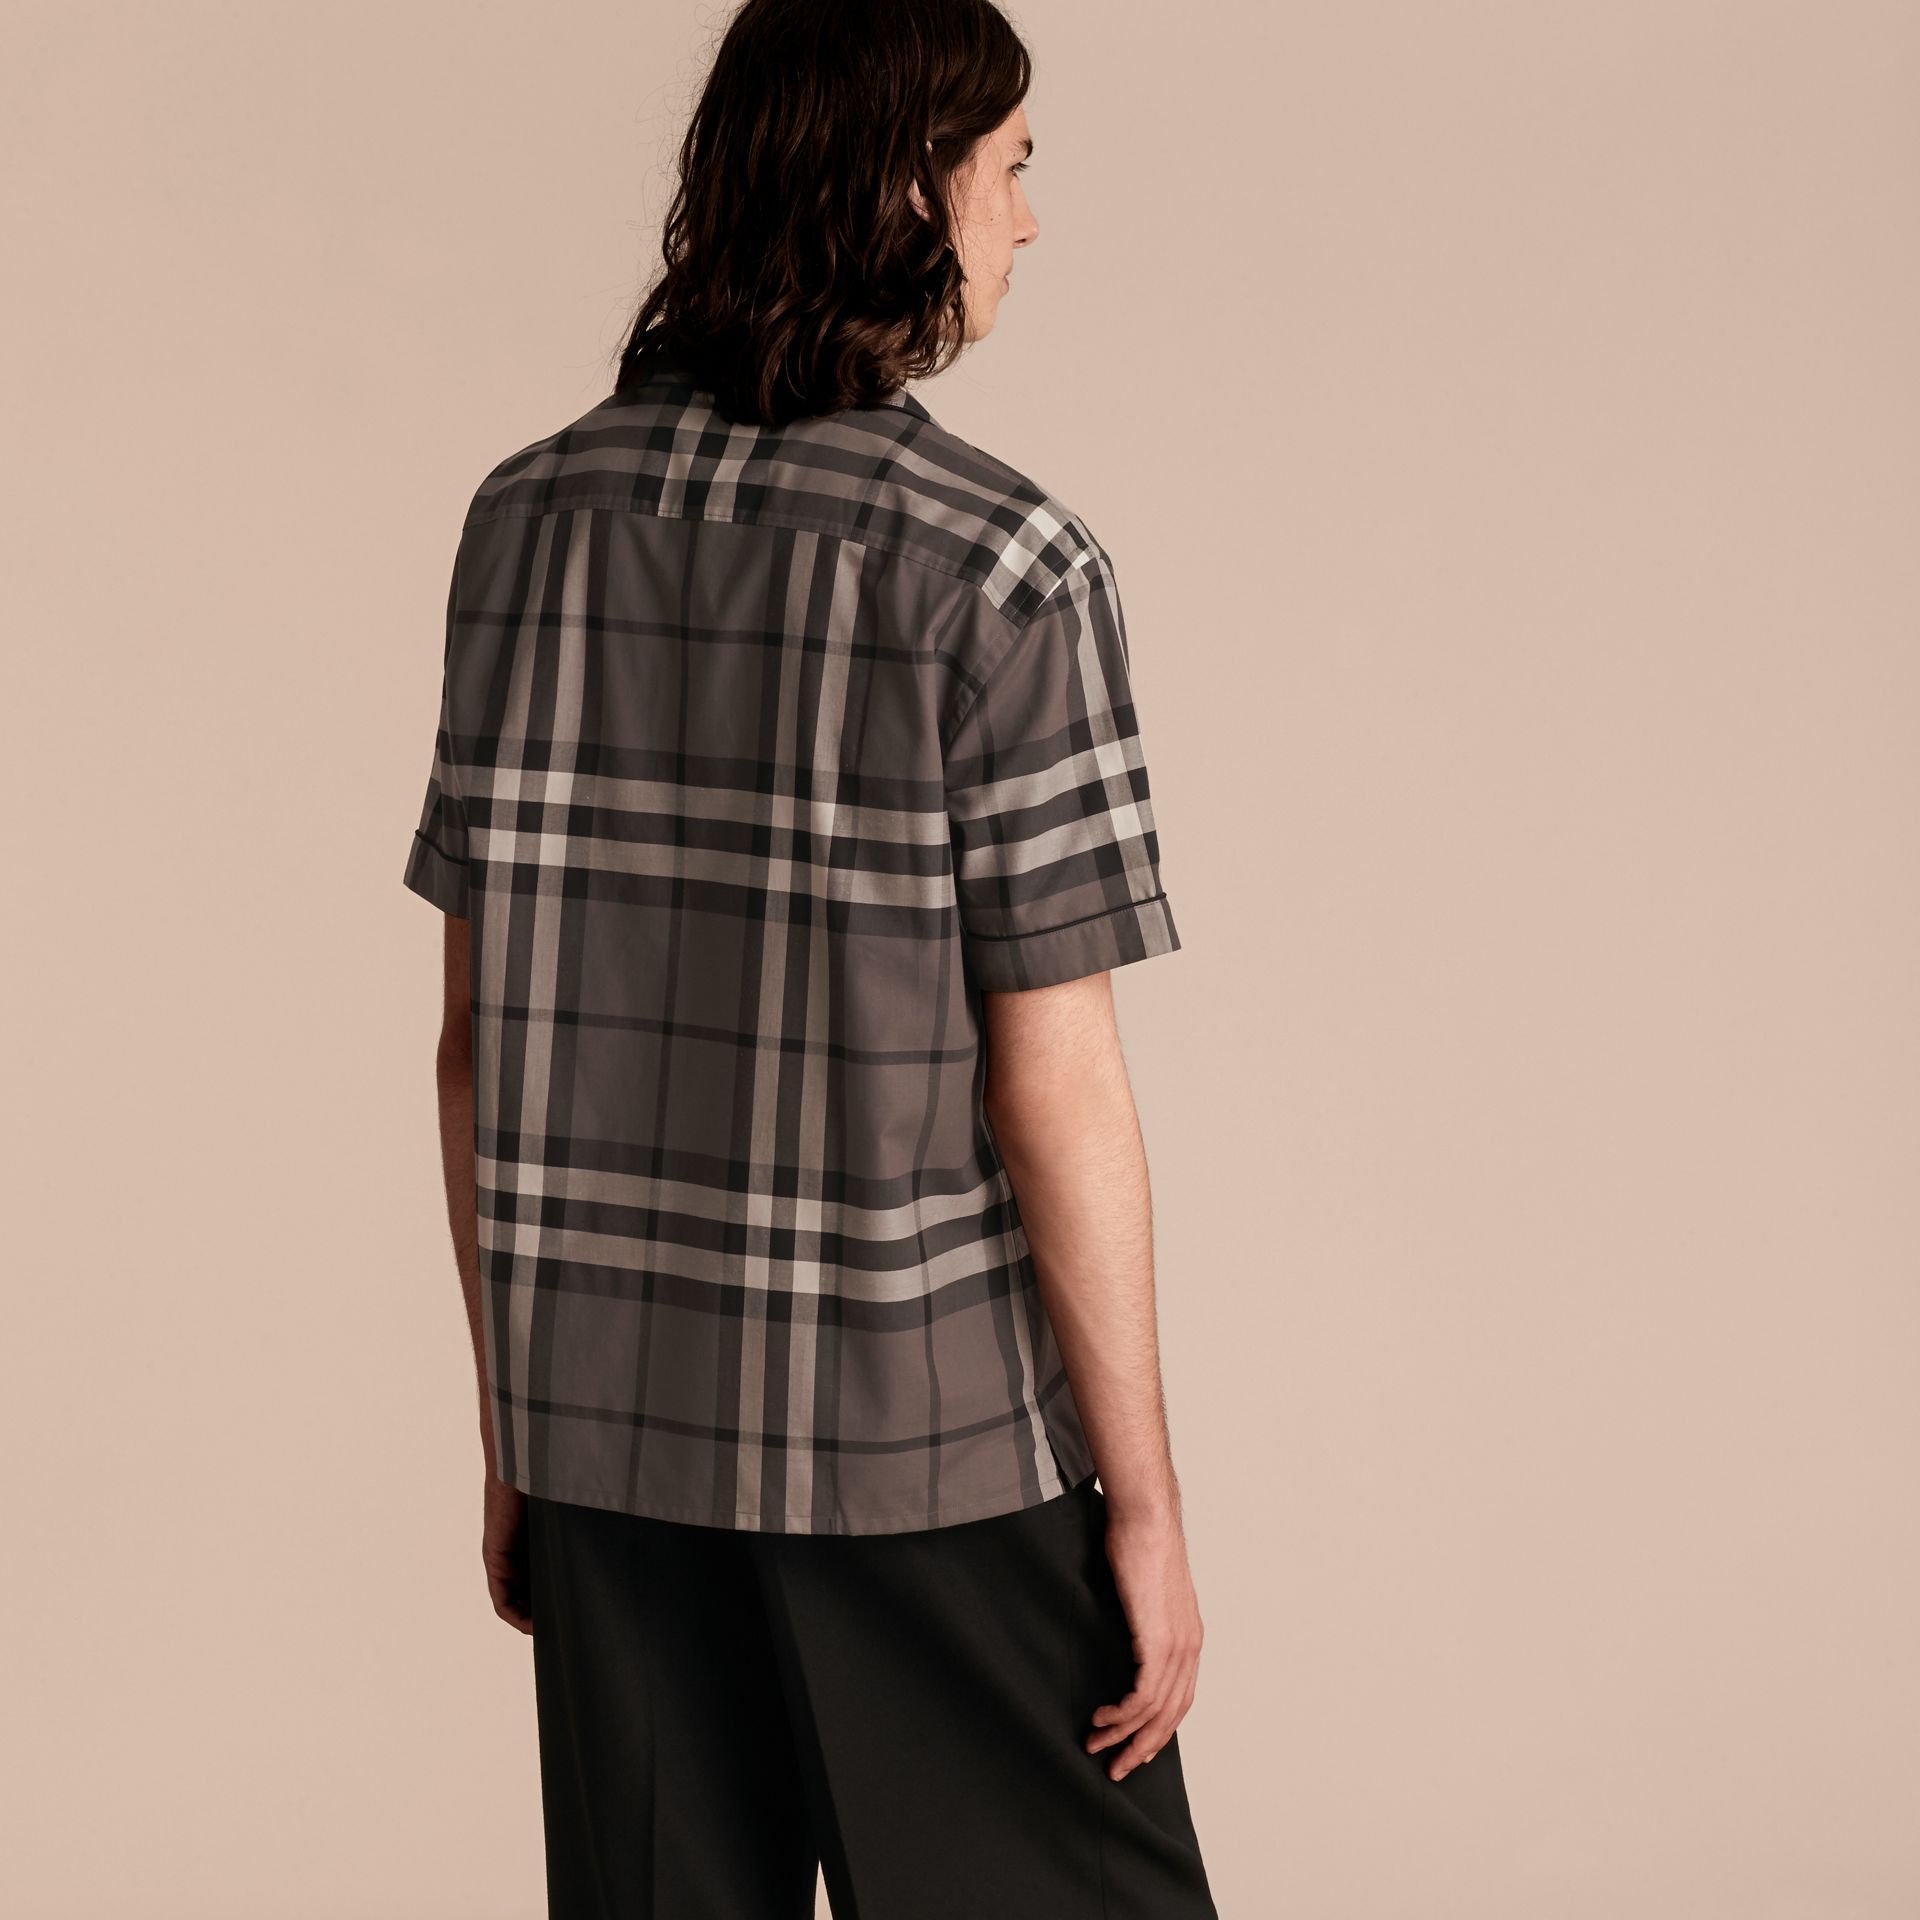 Charcoal Short-sleeved Check Cotton Pyjama-style Shirt - gallery image 3